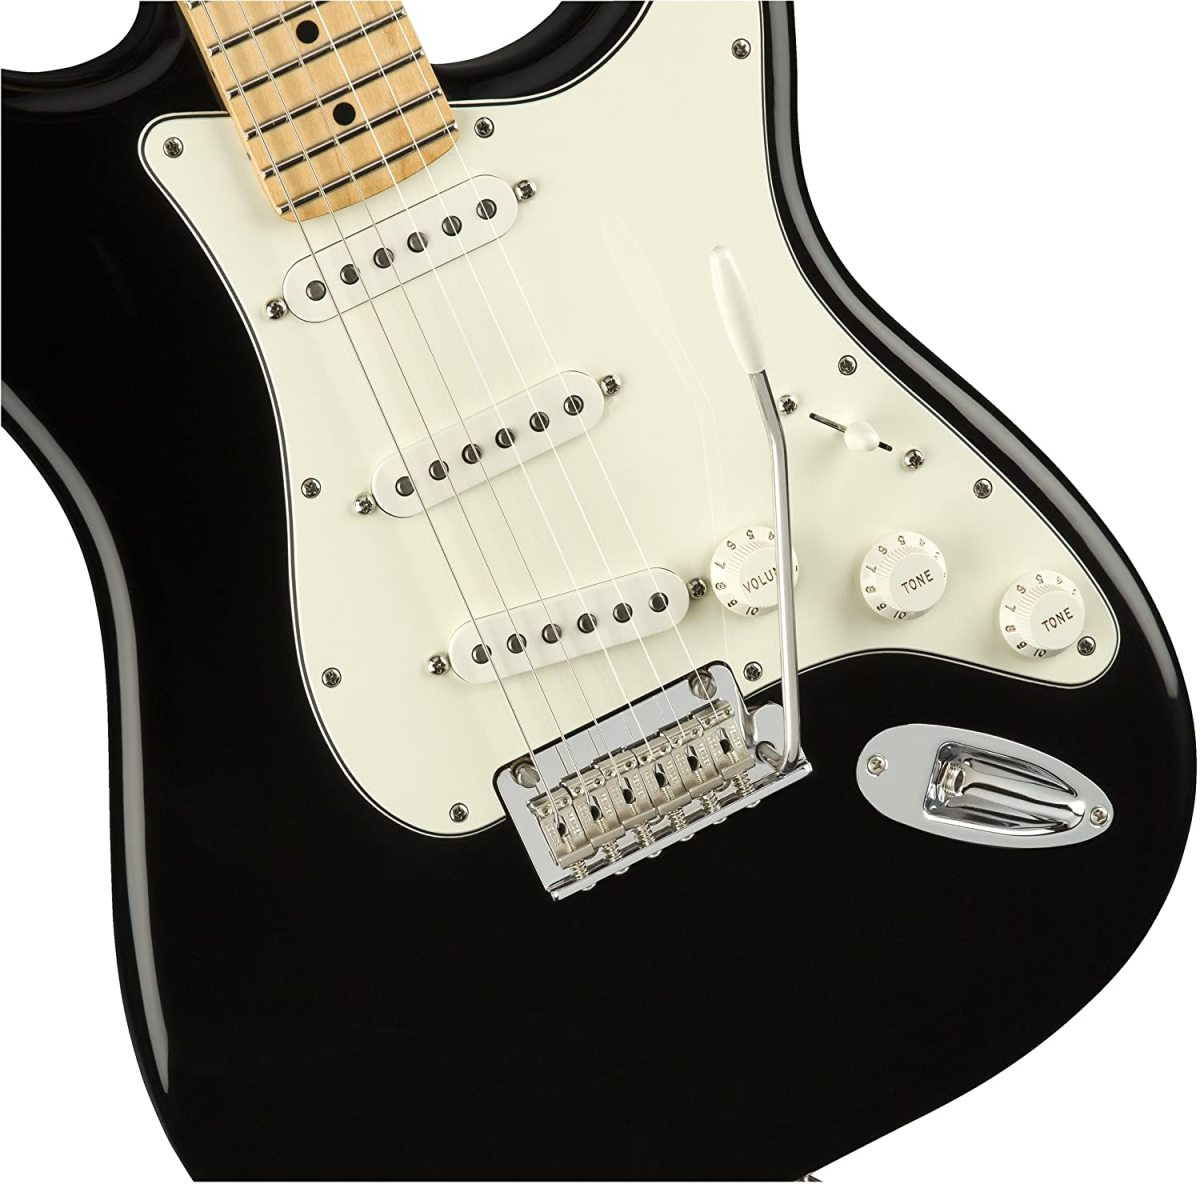 The Fender Player Stratocaster is the new MIM HSS Strat